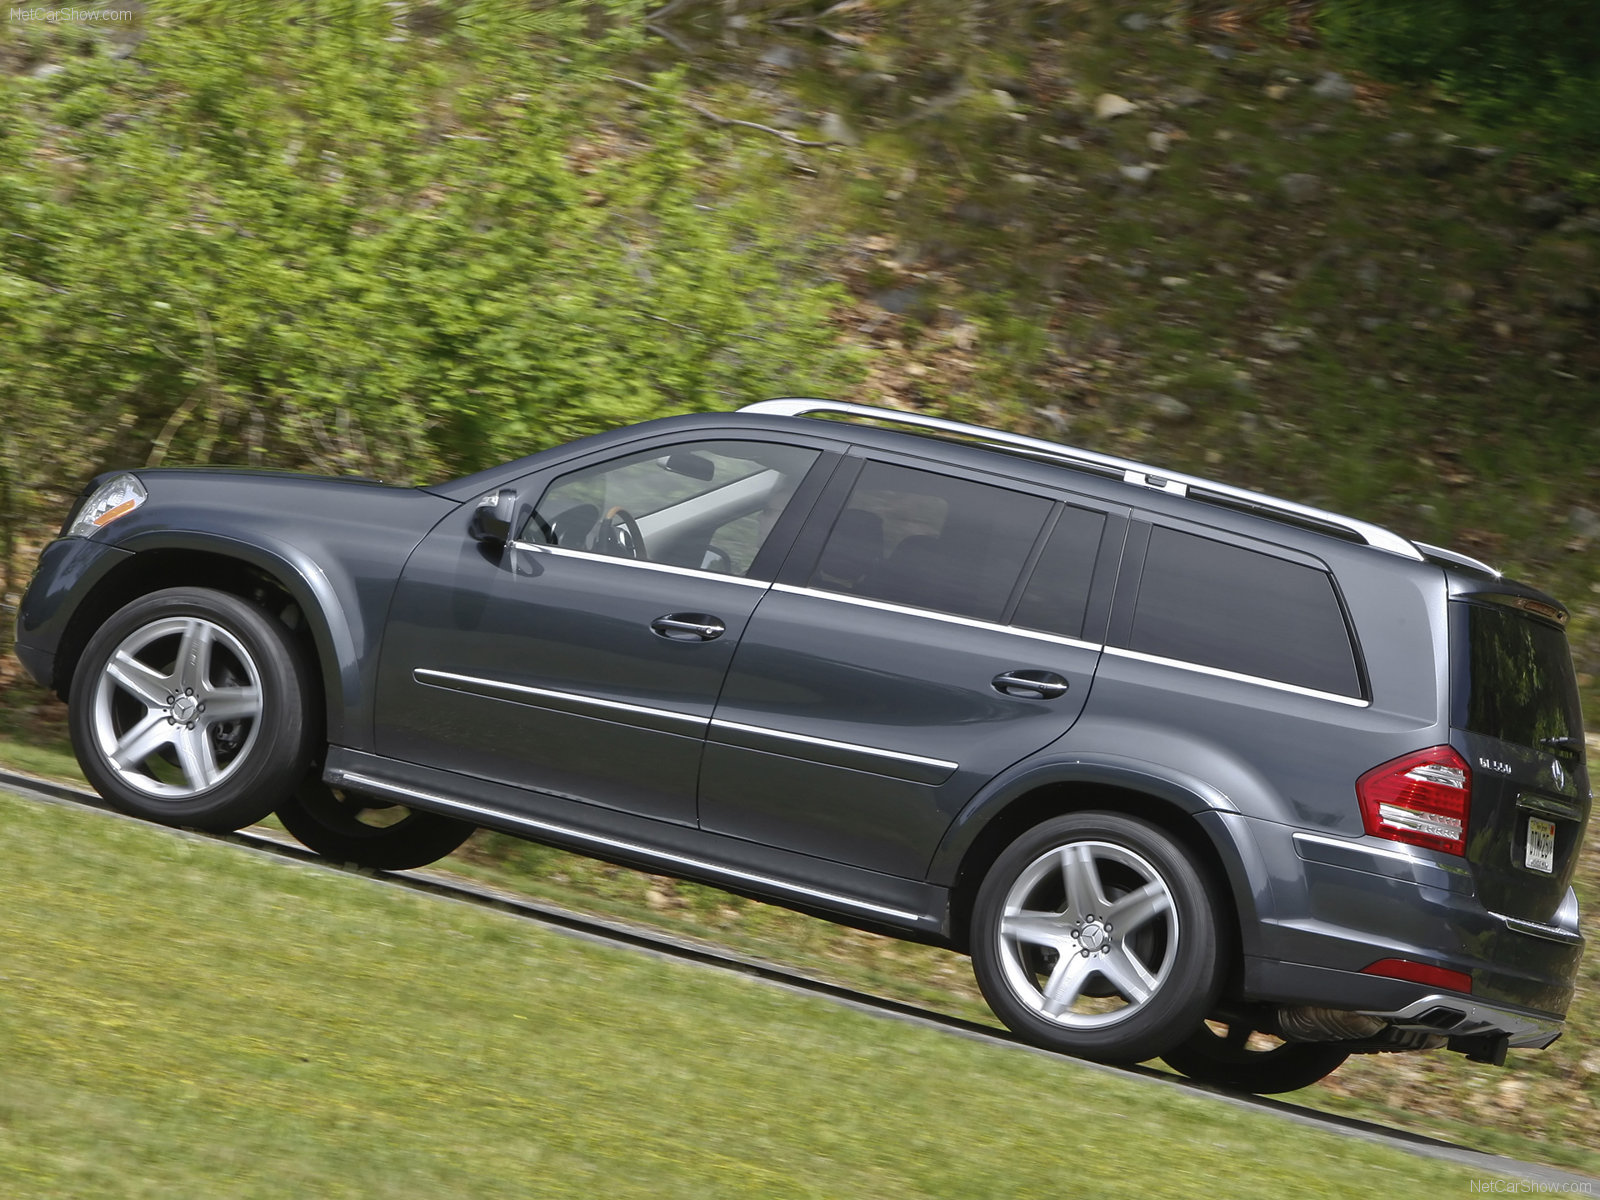 3dtuning of mercedes gl class suv 2010 unique on line car configurator for more. Black Bedroom Furniture Sets. Home Design Ideas